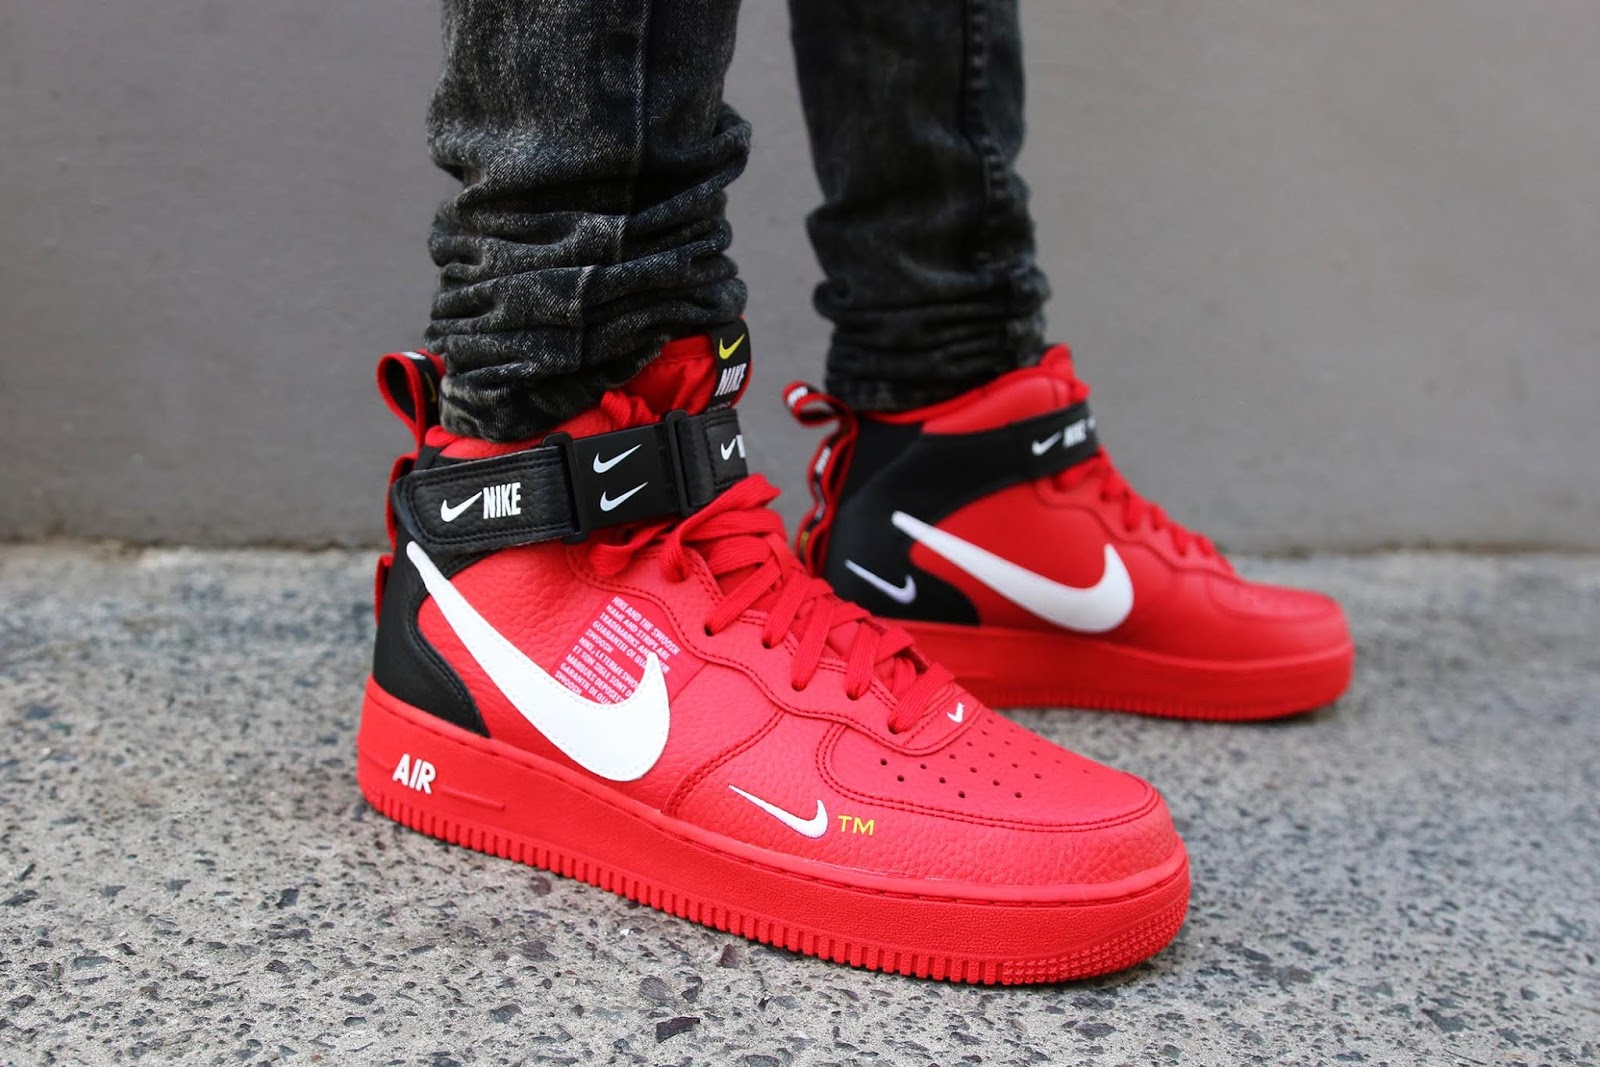 detailed look ea93d 86360 First Look  Nike Air Force 1 Mid  07 LV8 Utility – Red